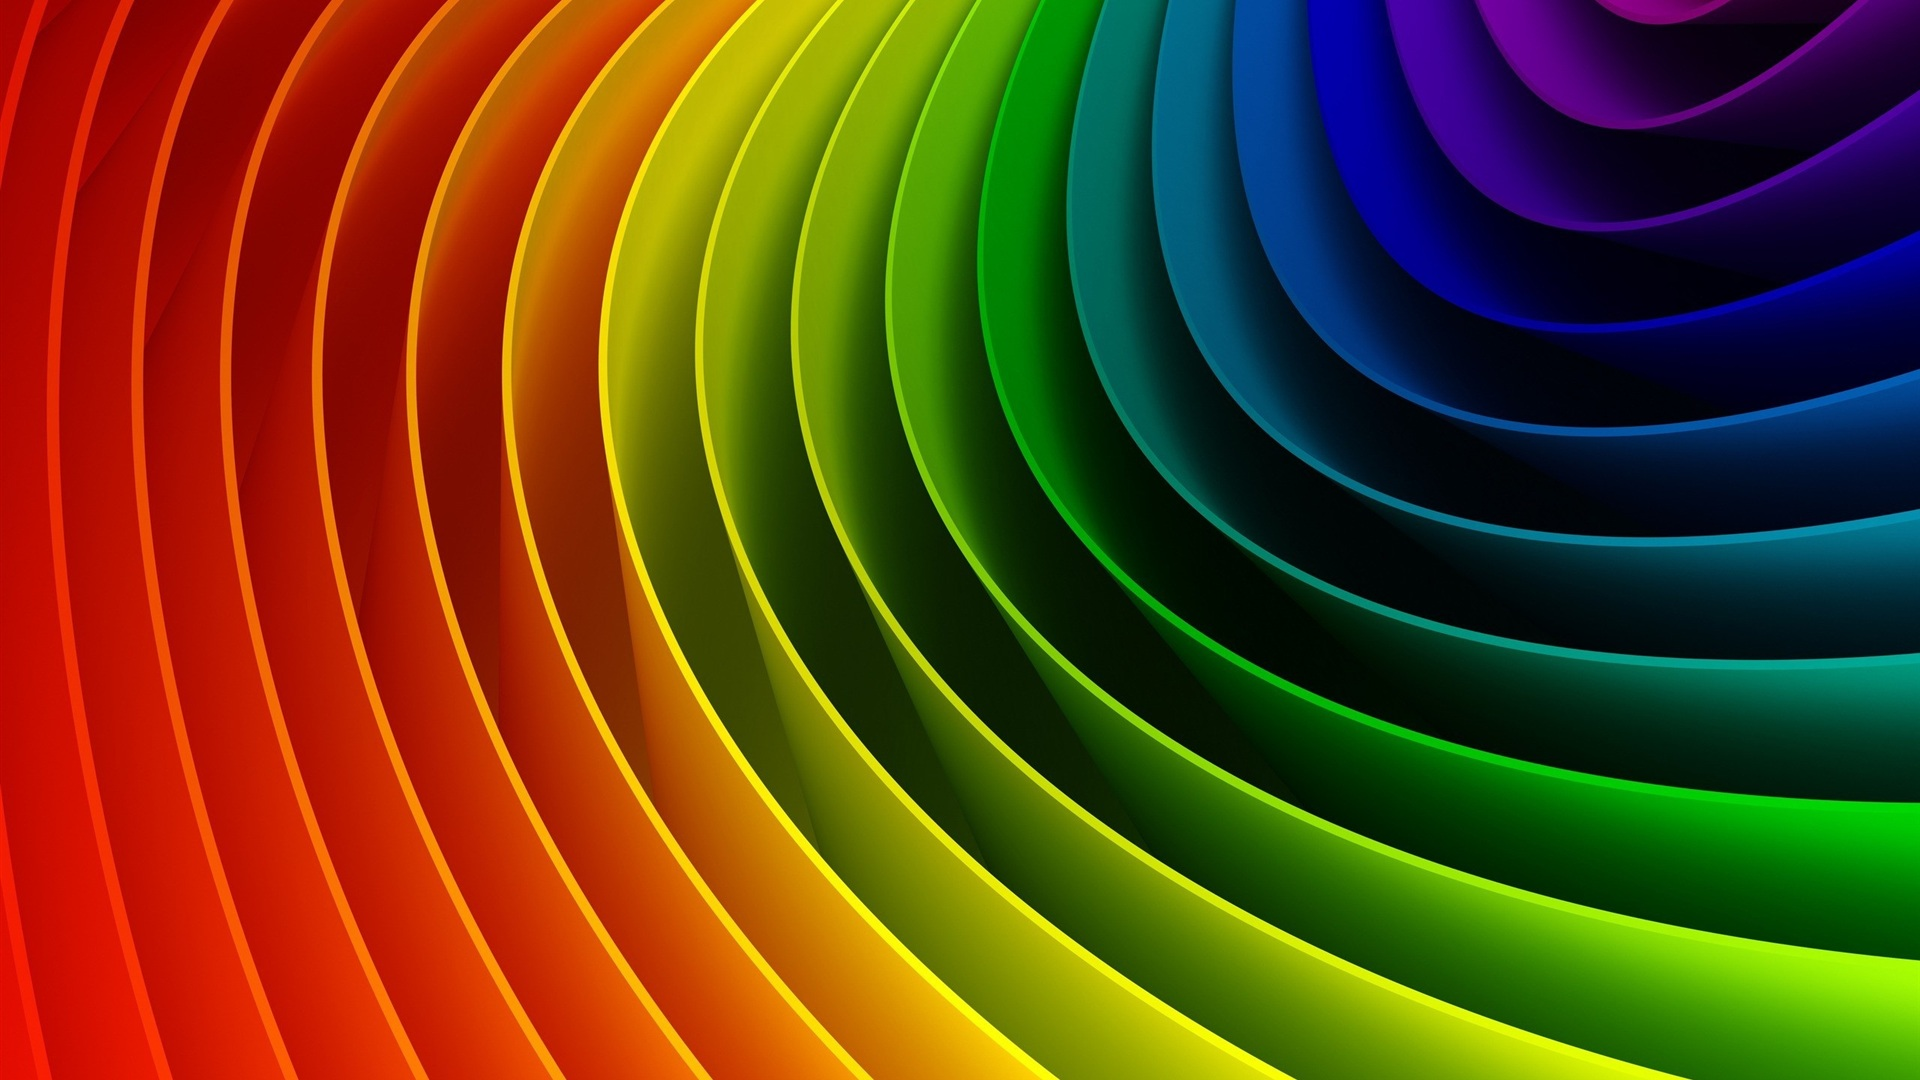 Curved Colorful Rainbow